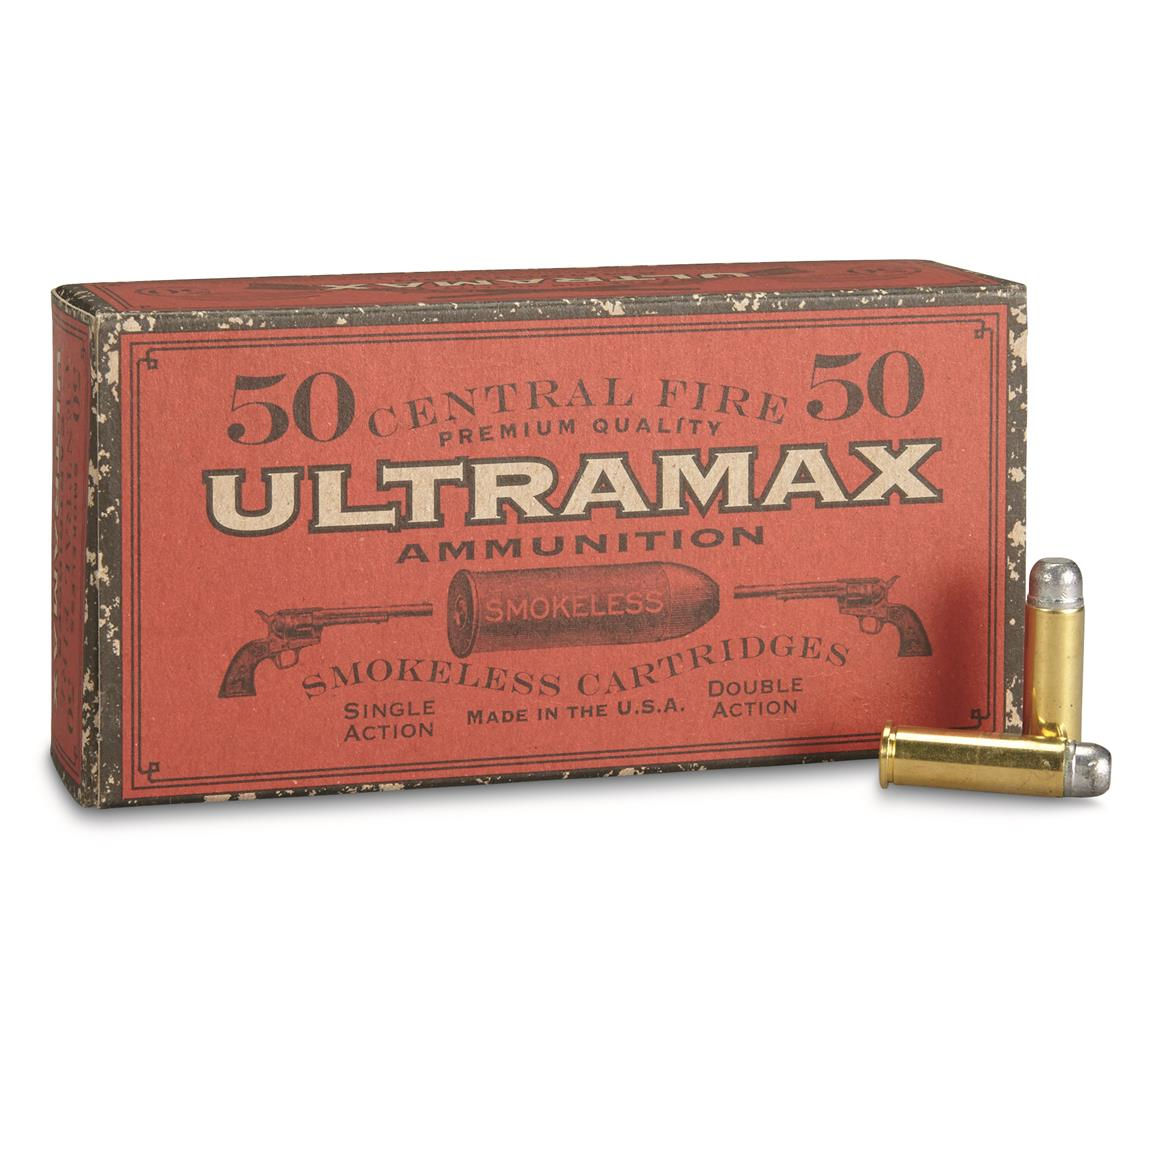 Ultramax Cowboy-Action, .38 Special, RNFP, 158 Grain, 50 Rounds